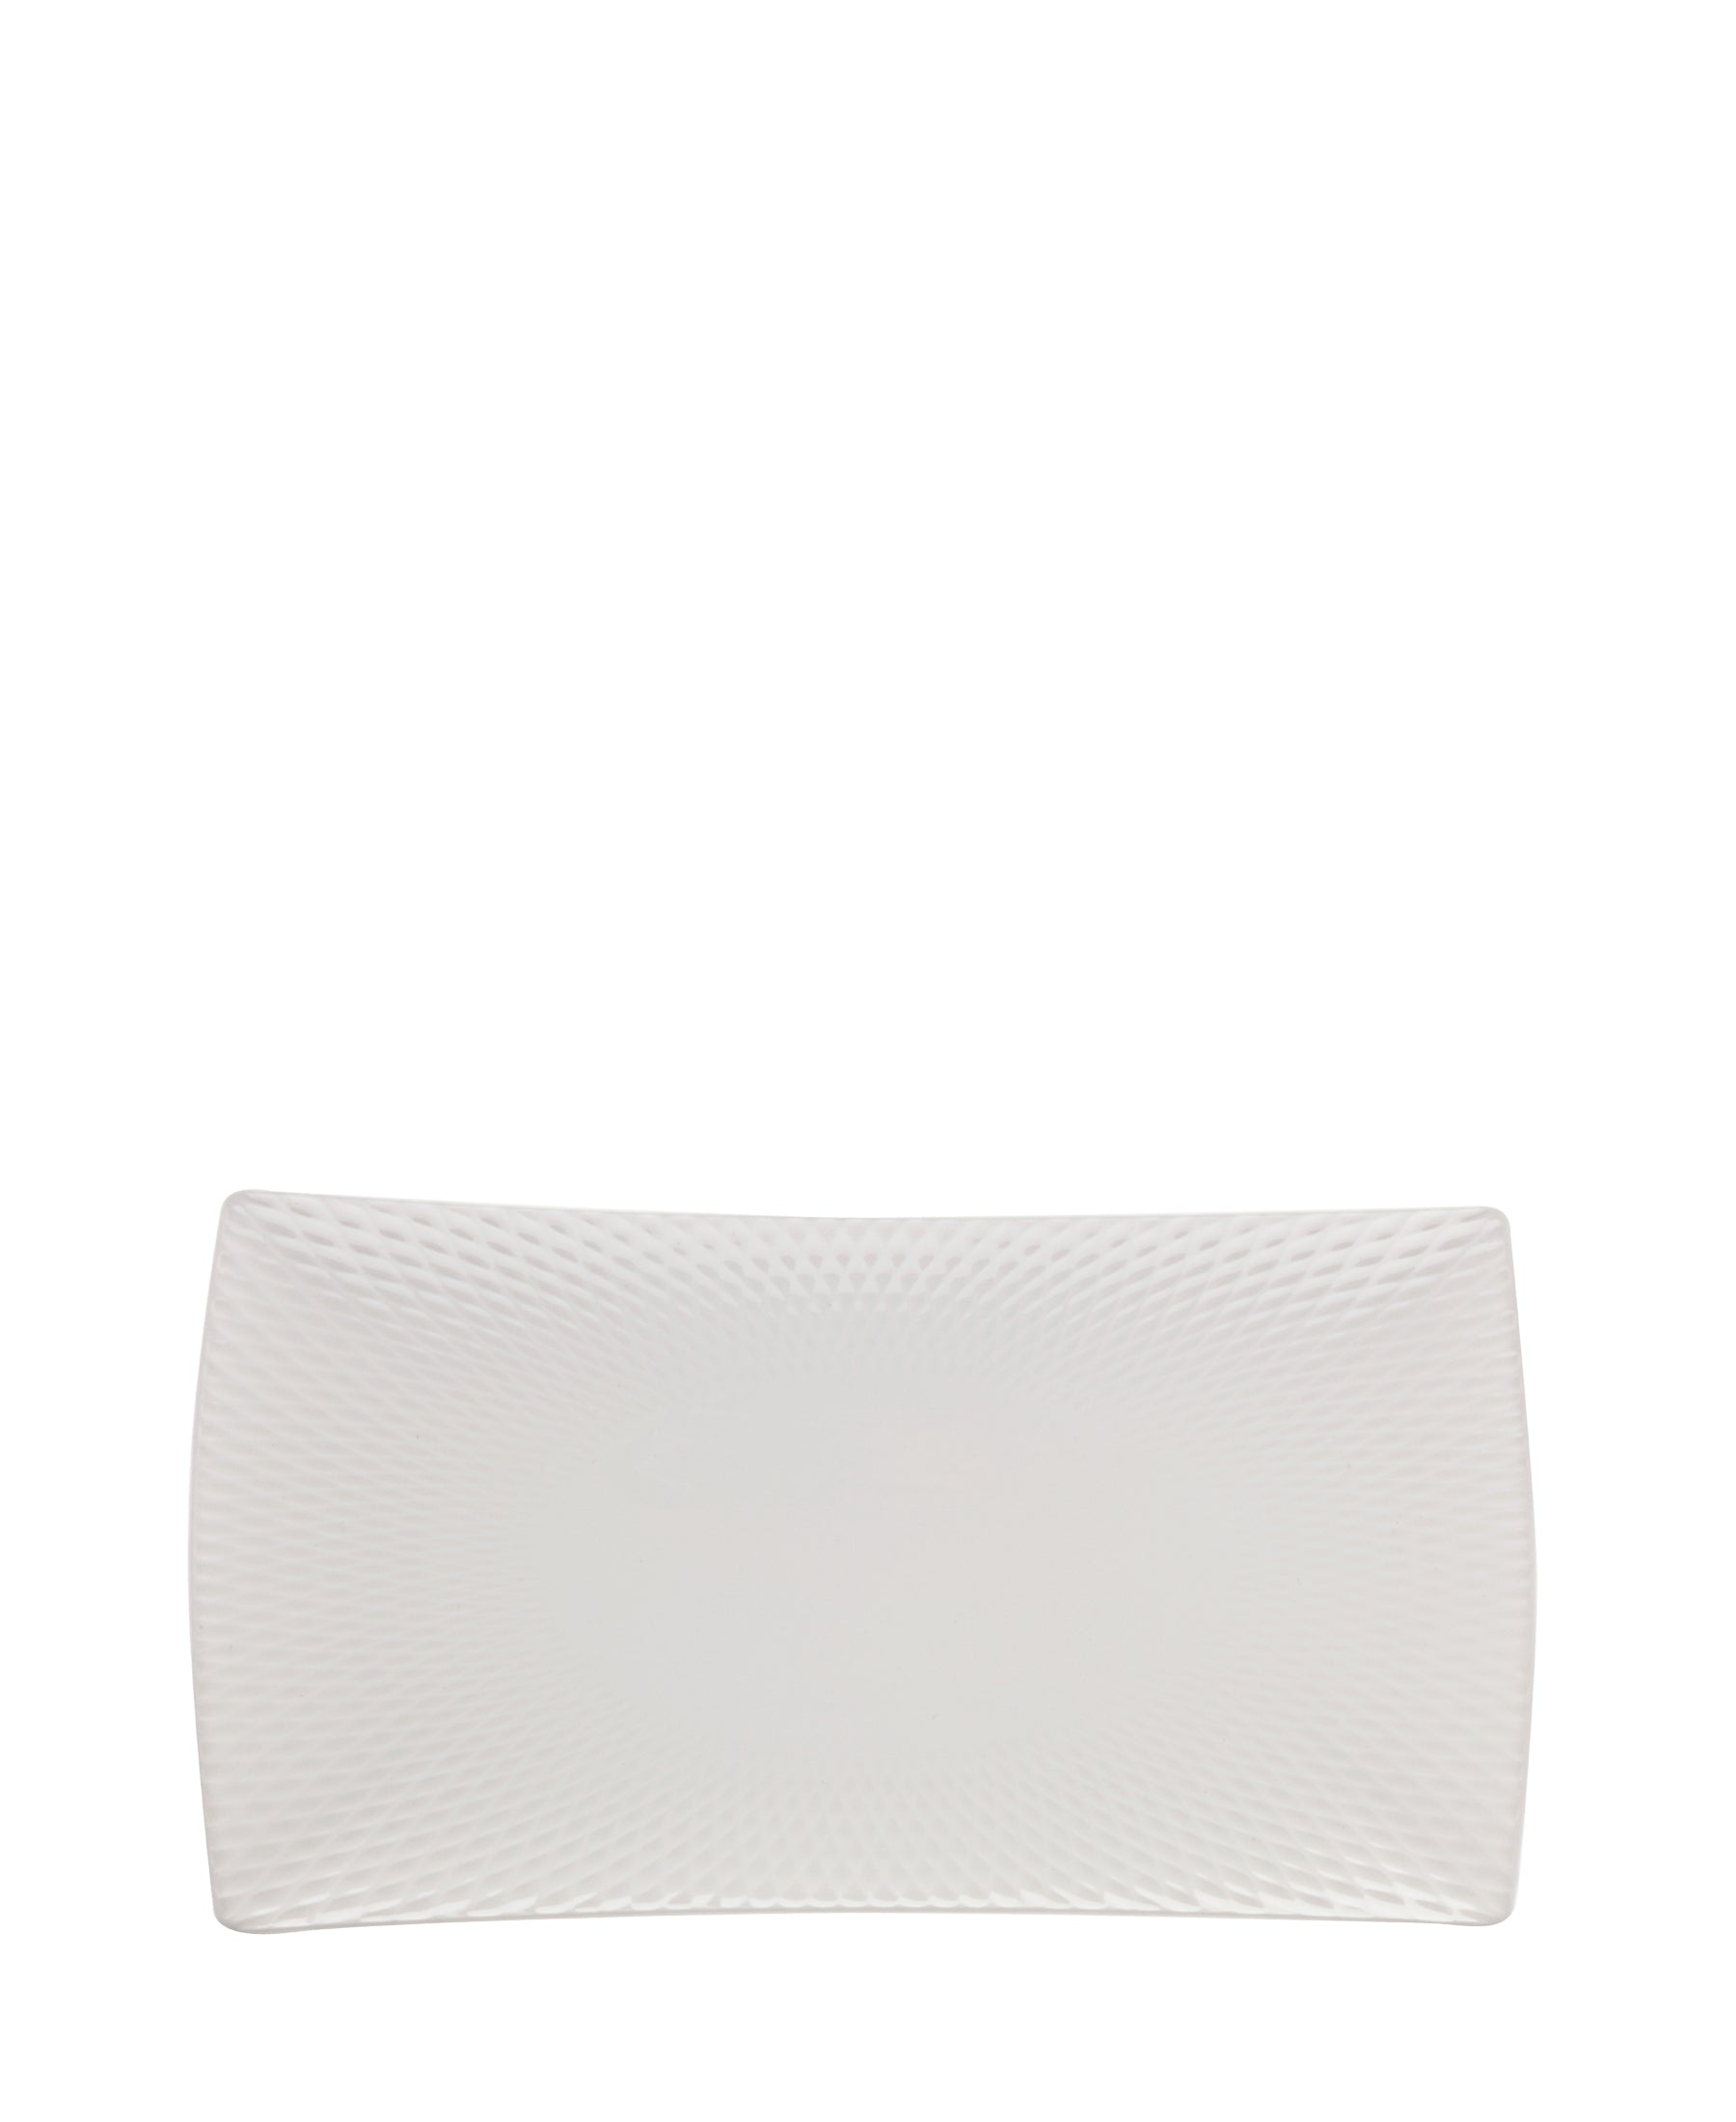 Maxwell & Williams Diamonds Rect Platter - White